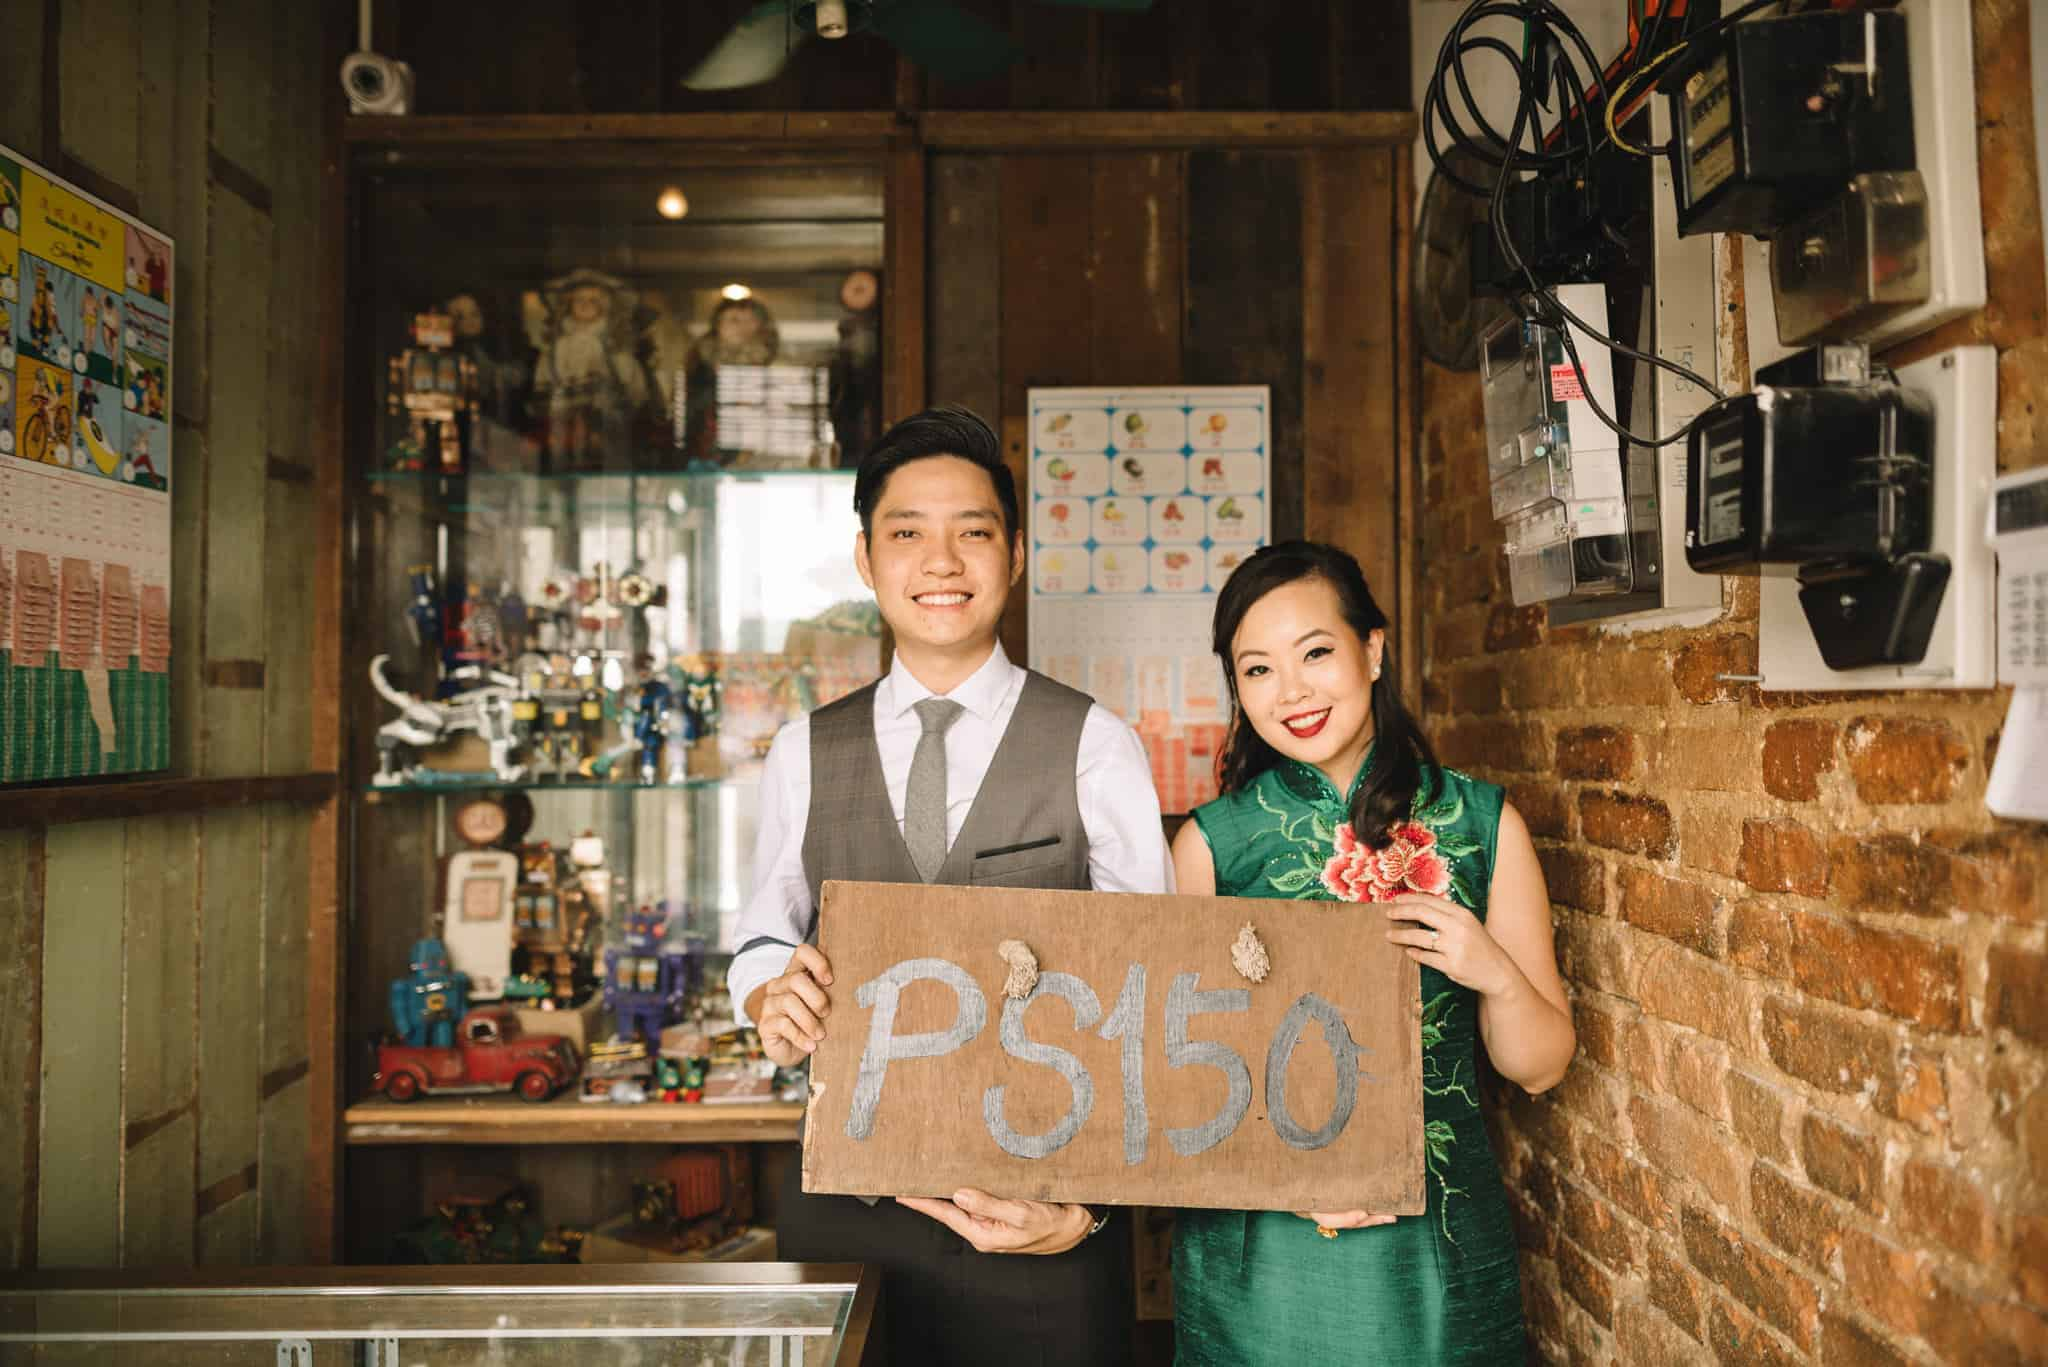 ps 150 pre-wedding